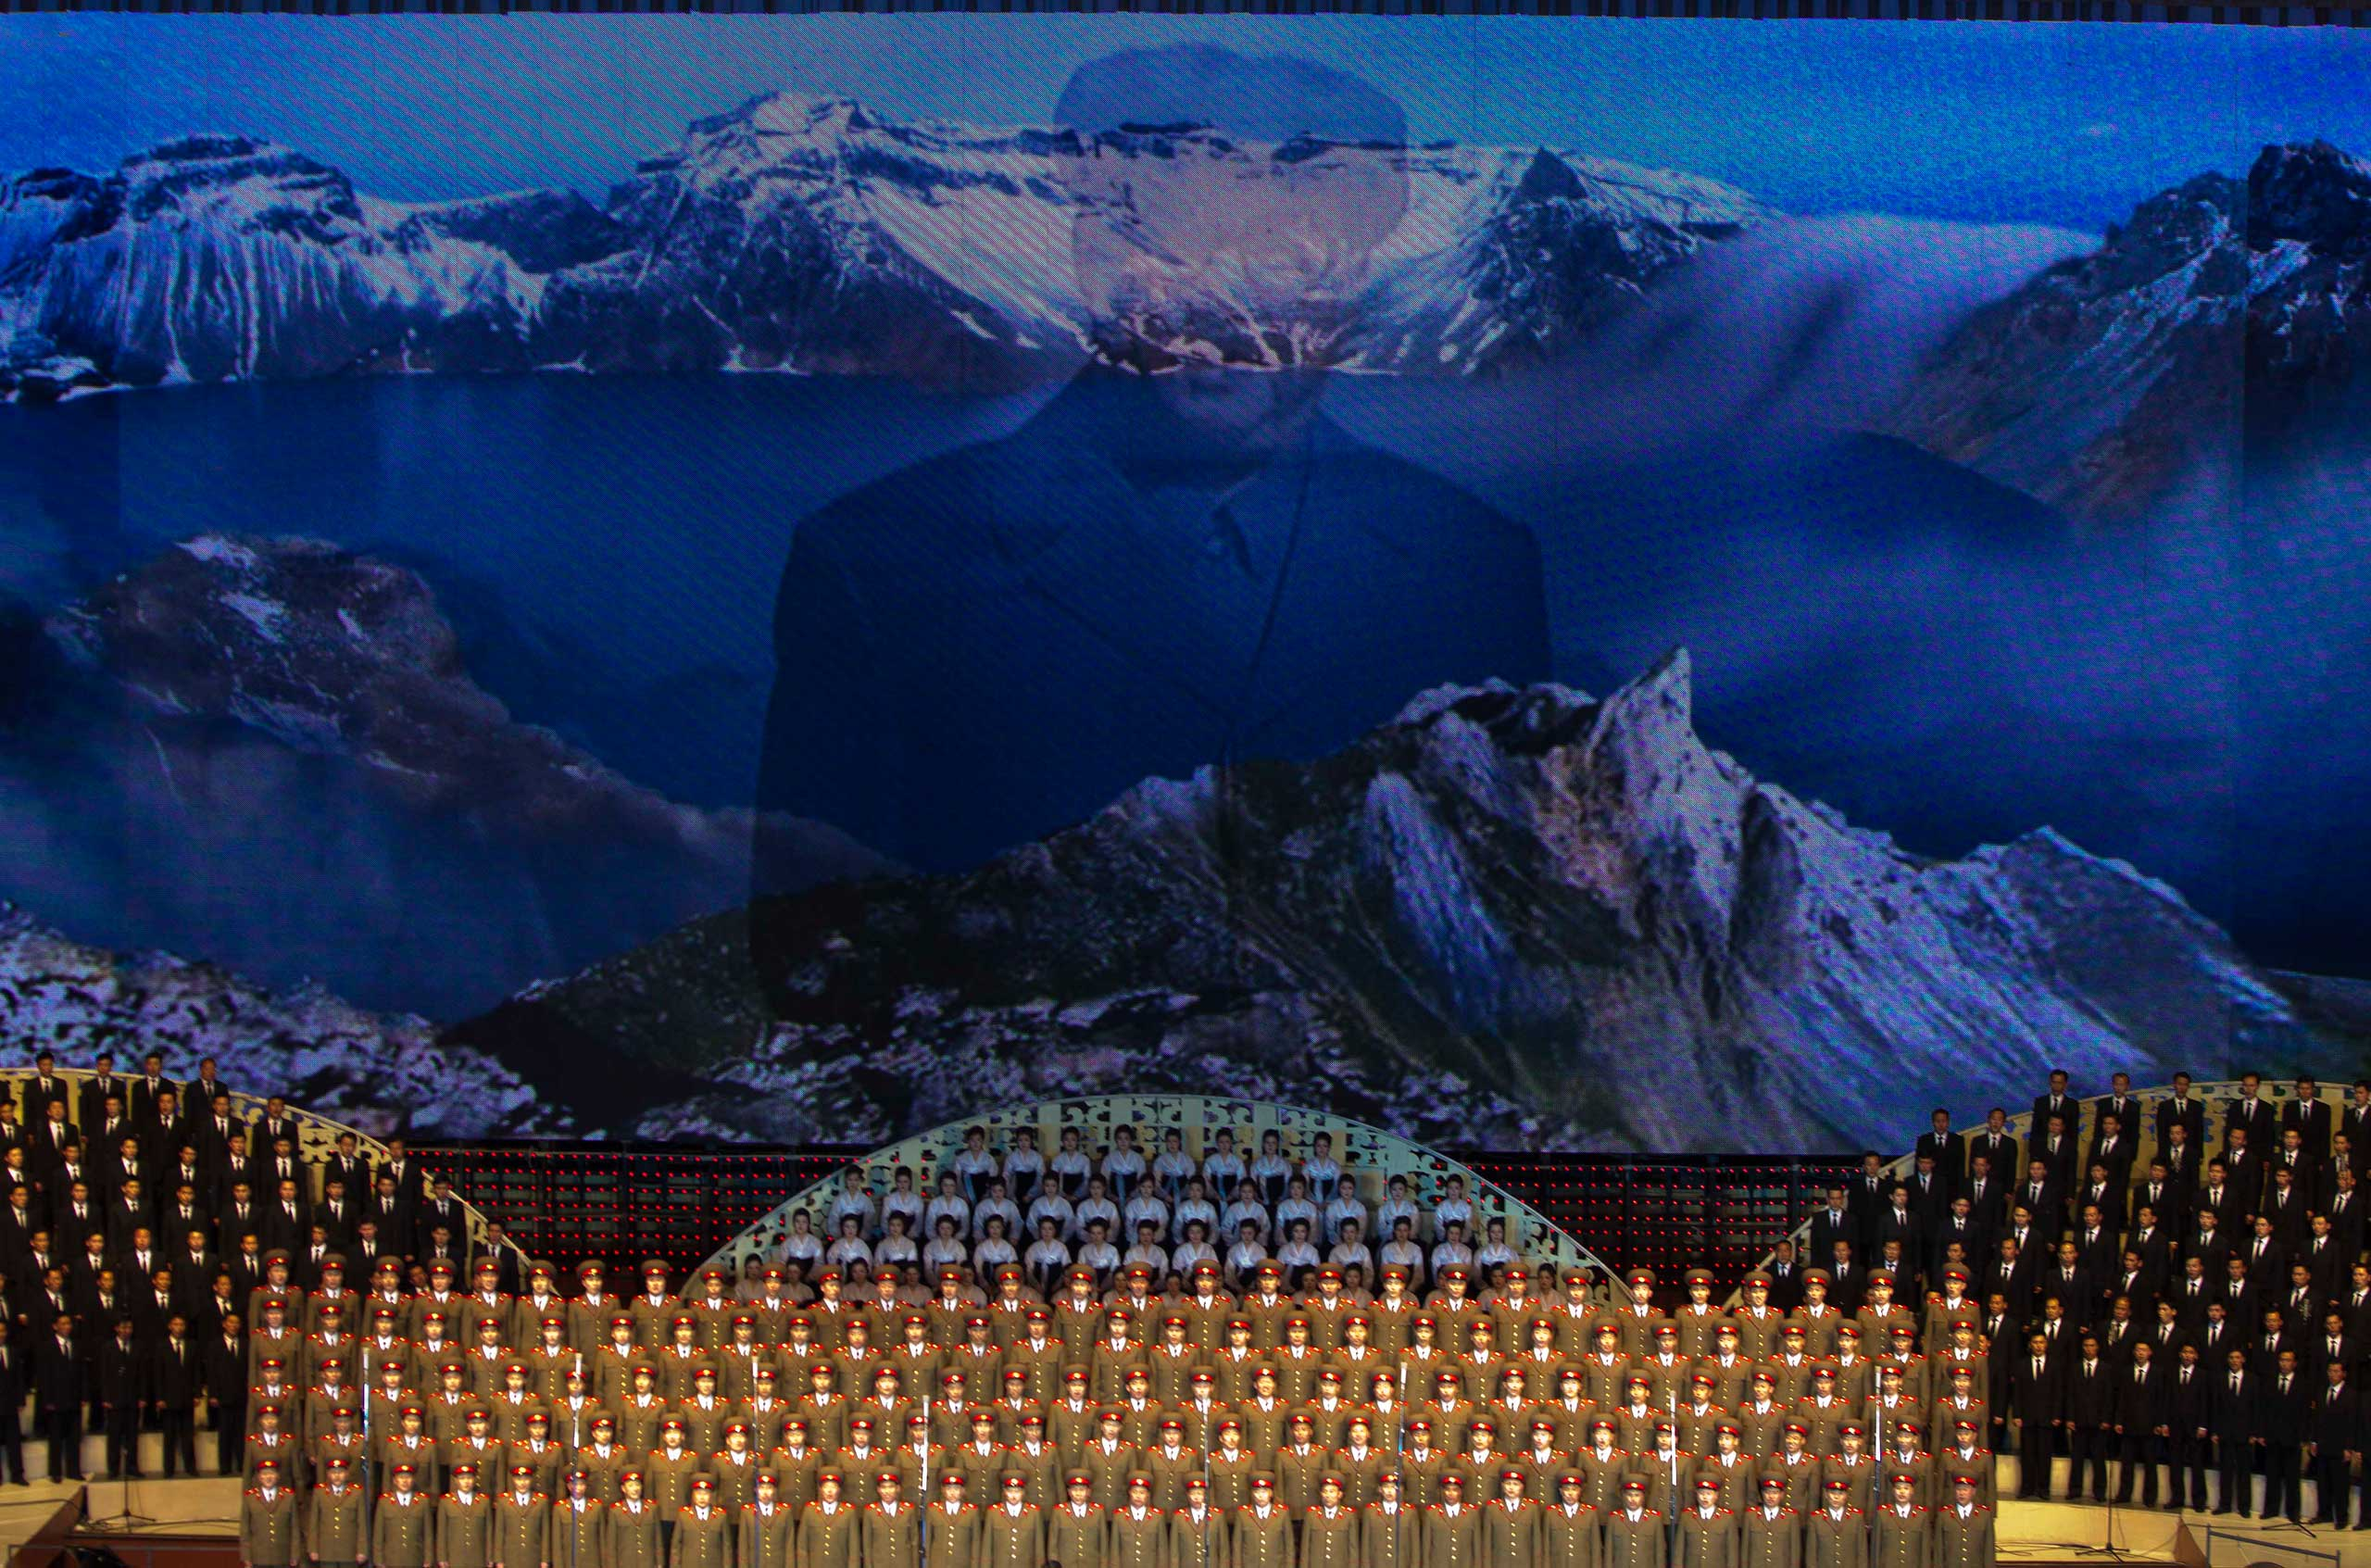 April 16, 2012. Images of the late North Korean leader Kim Il-Sung and Mt. Paektu appear on a screen behind a choir during a concert in Pyongyang.